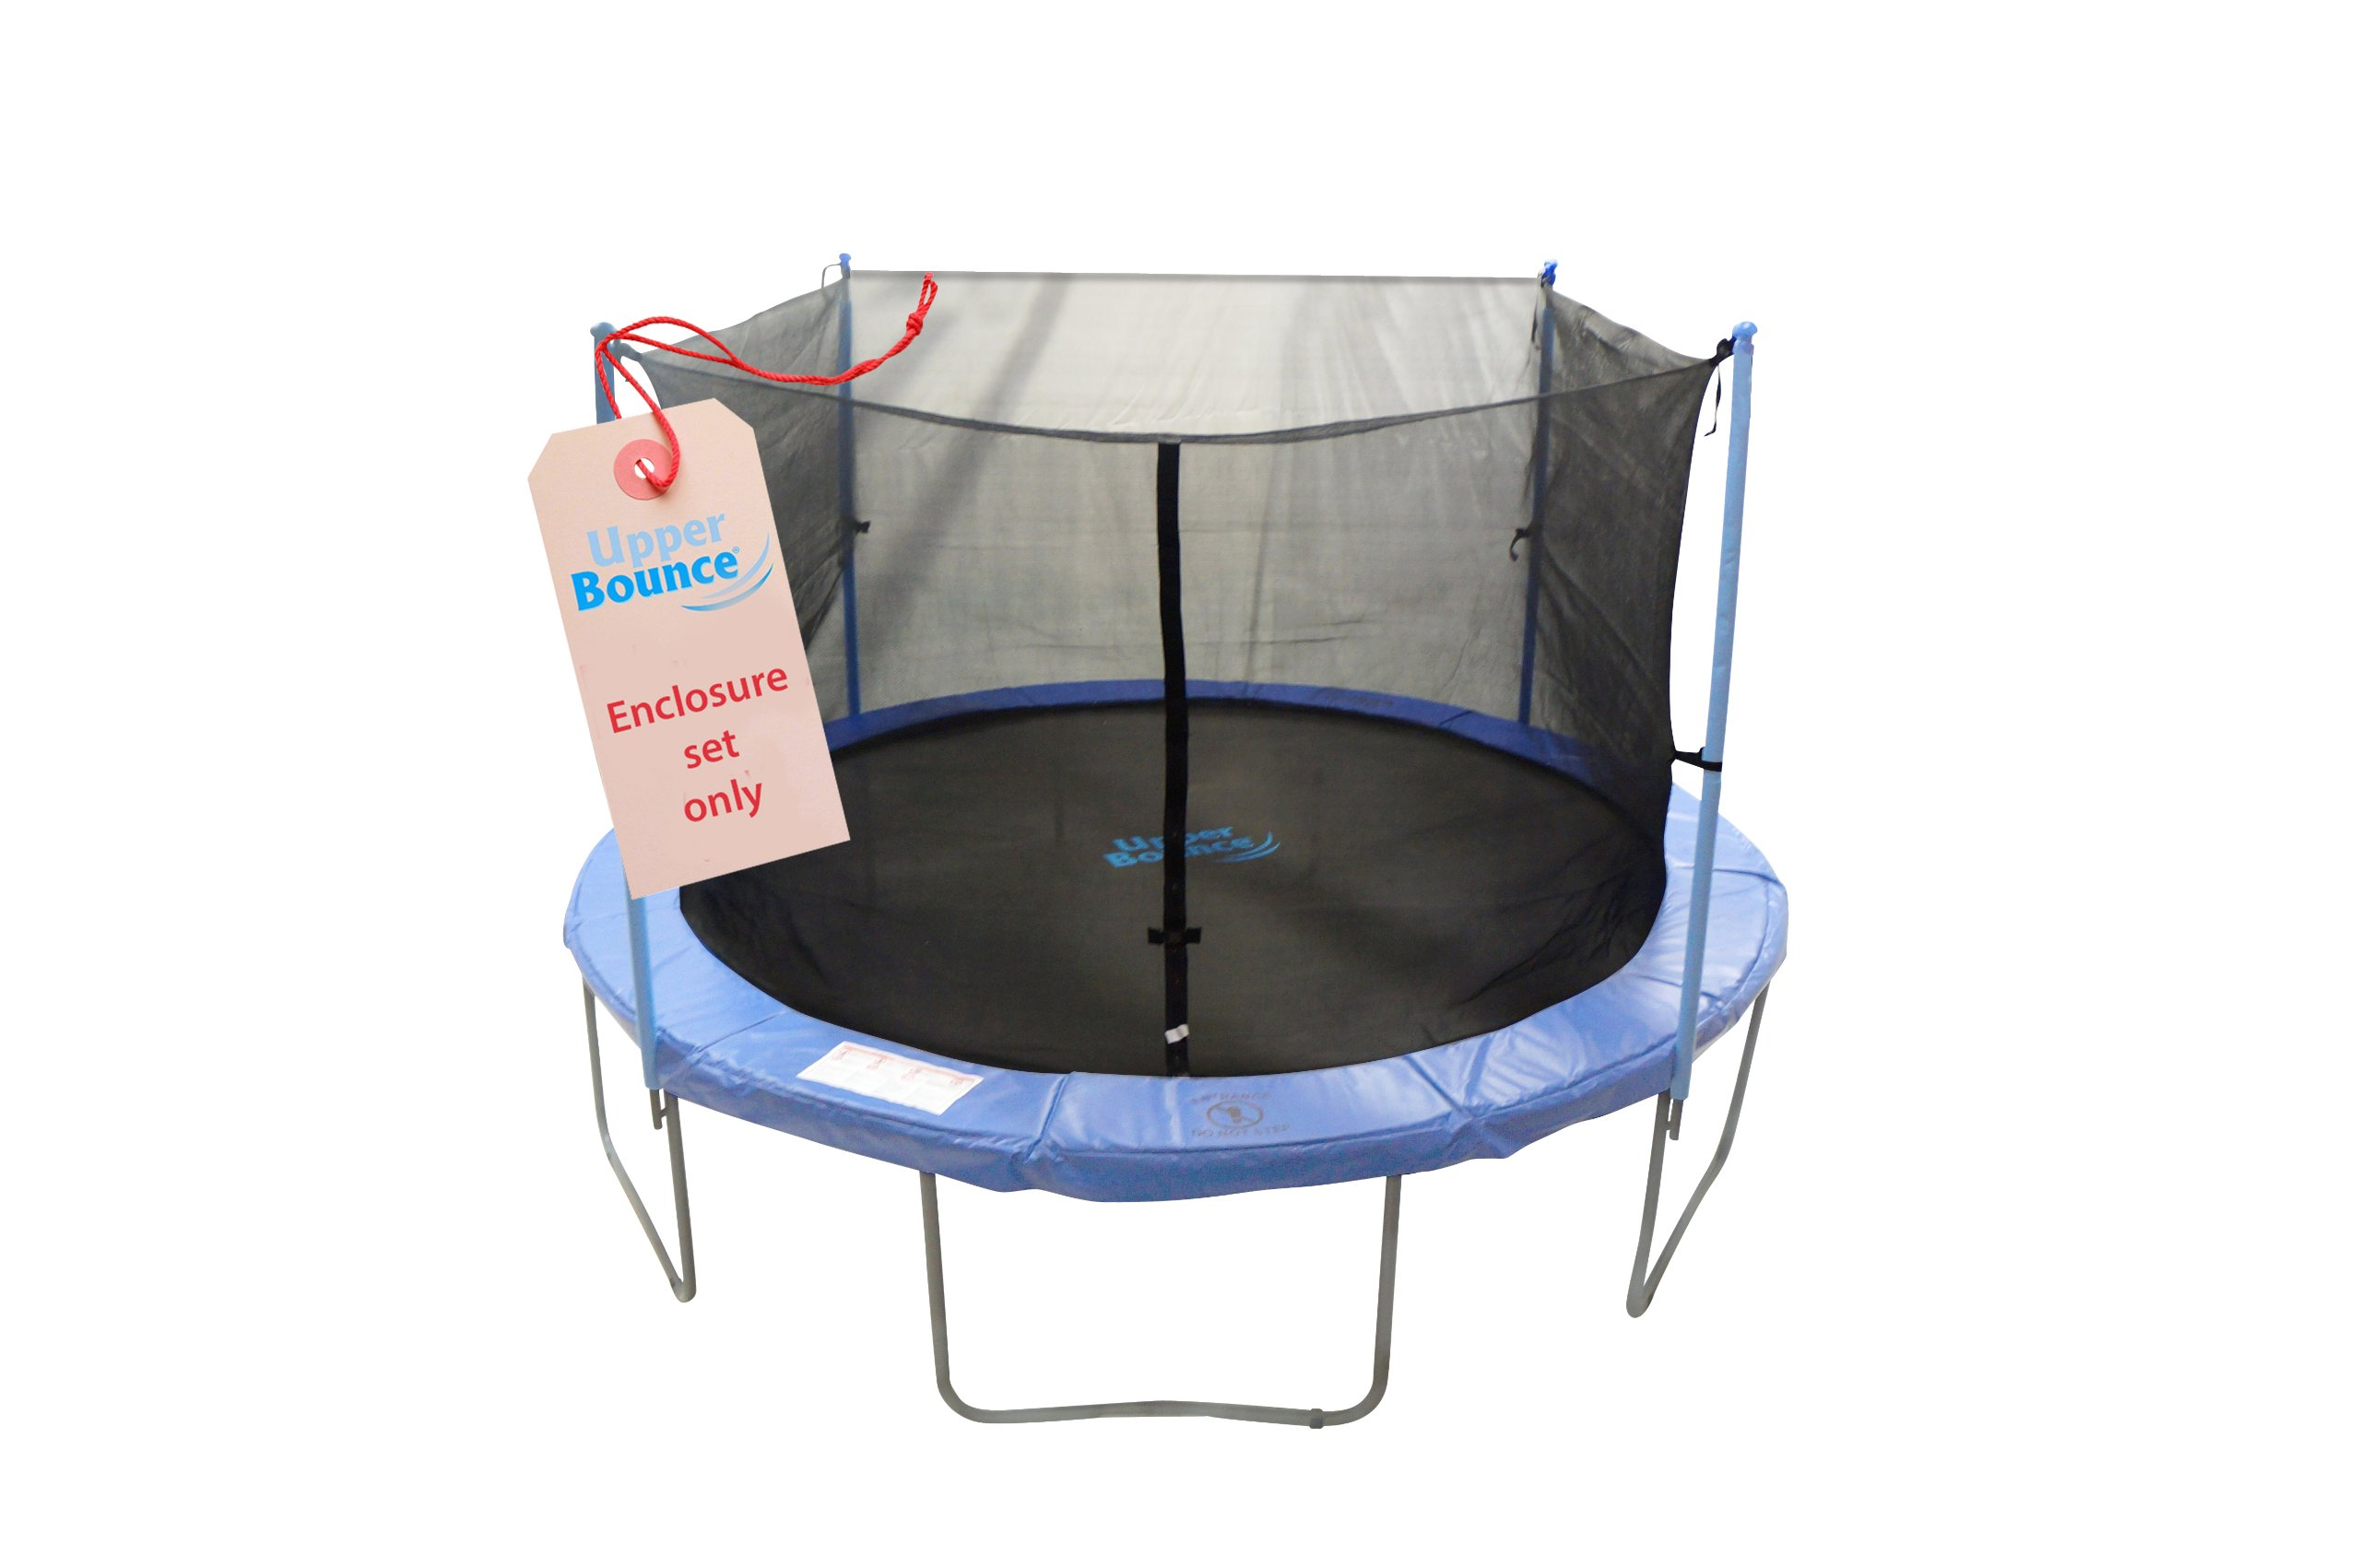 Upper Bounce Trampoline Enclosure Set, to fit 10 FT. Round Frames, for 2 or 4 W-Shaped Legs -Set Includes: Net, Poles & Hardware Only by Upper Bounce